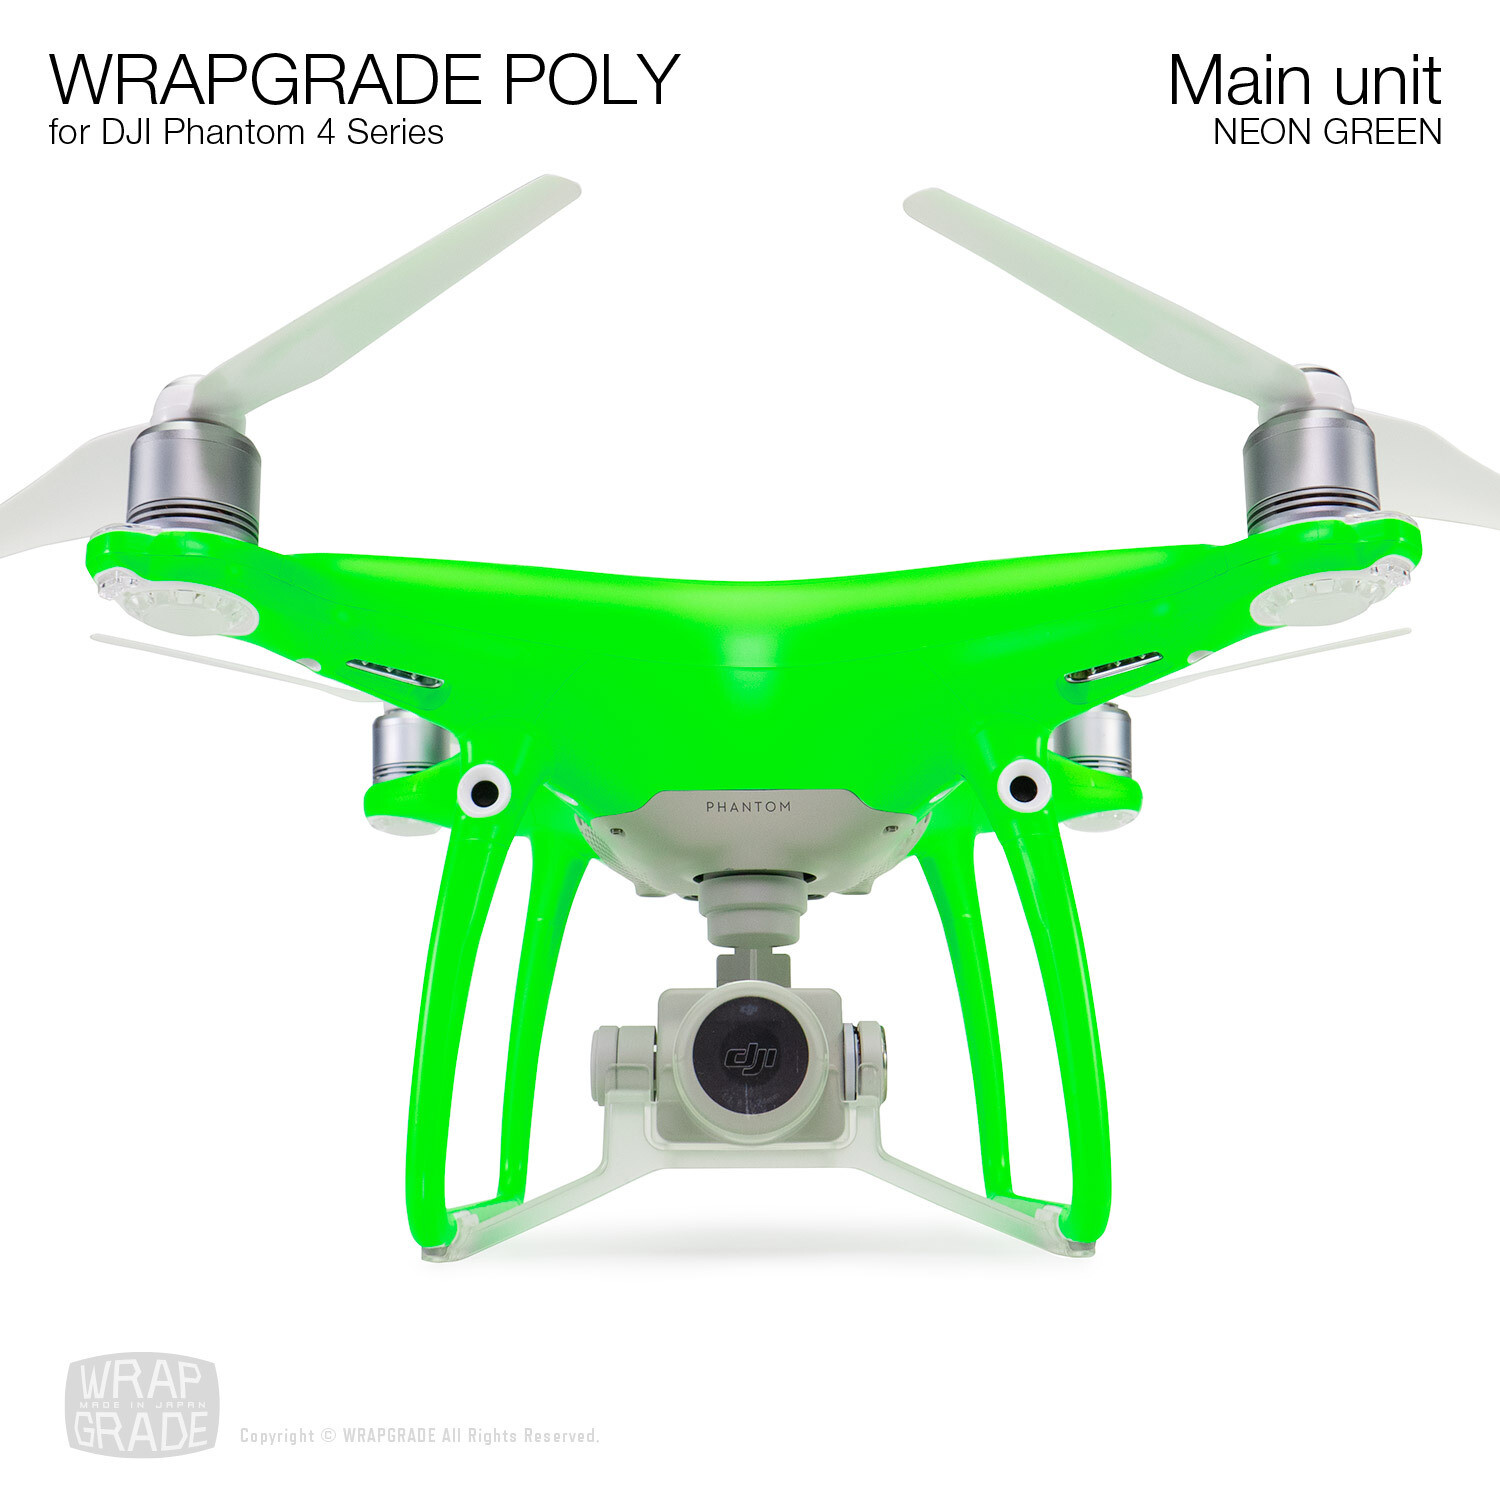 Wrapgrade Poly Skin for DJI Phantom 4 | Main unit (NEON GREEN)